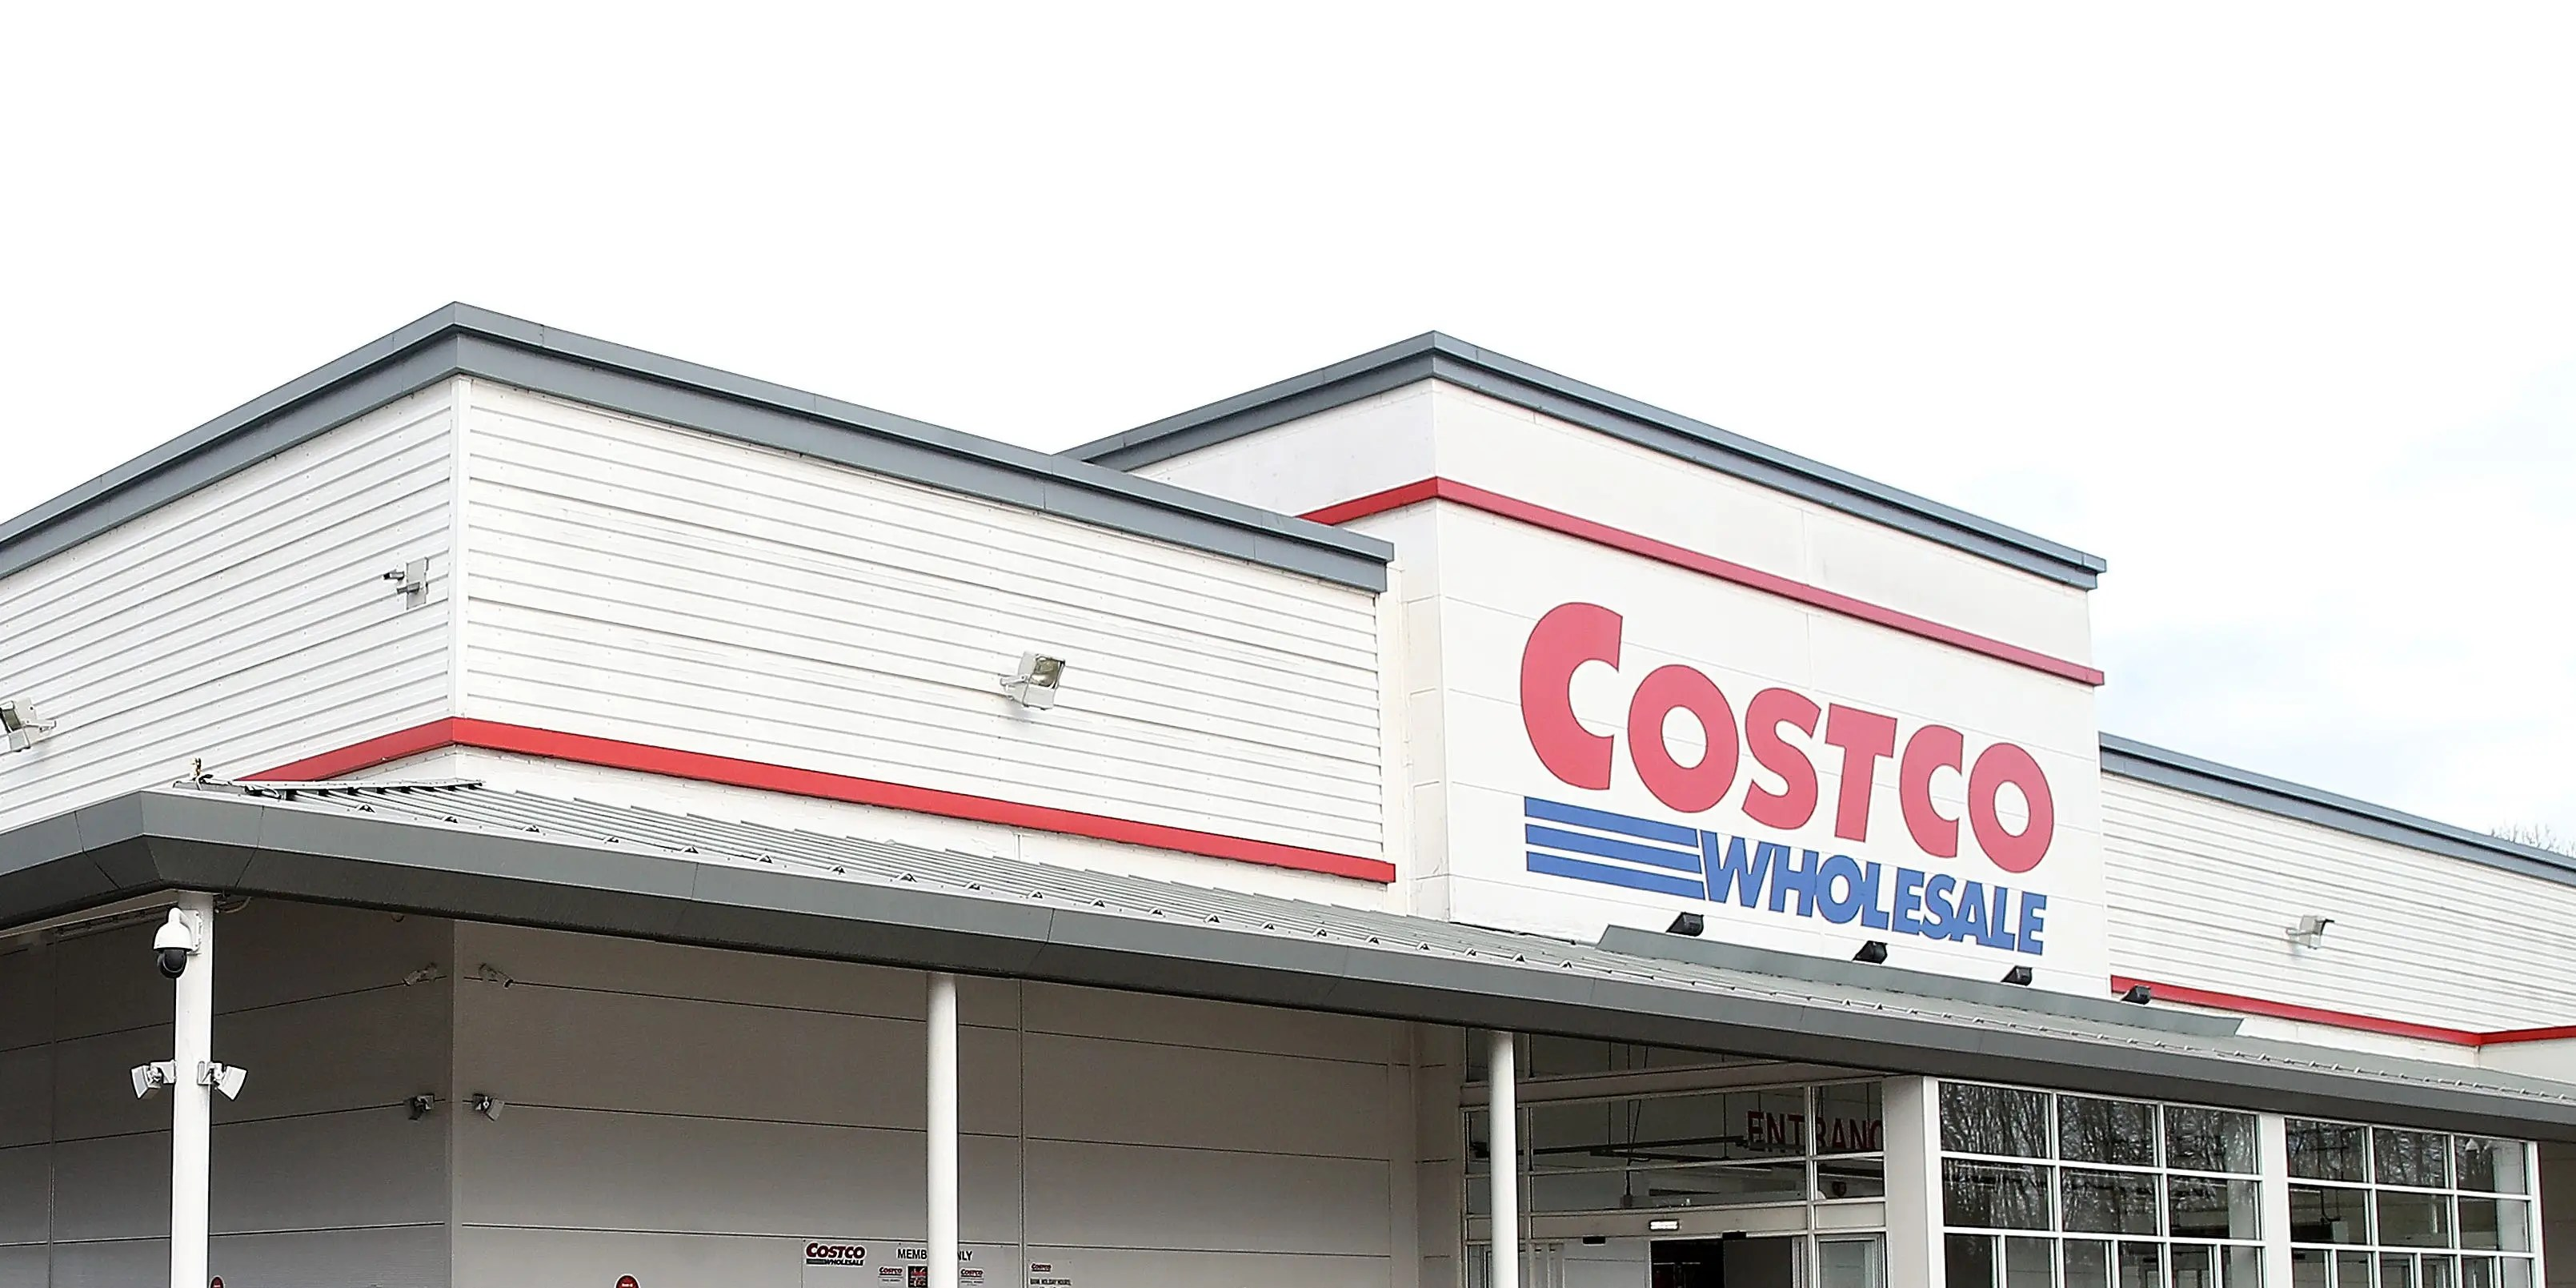 costco will keep selling mypillow